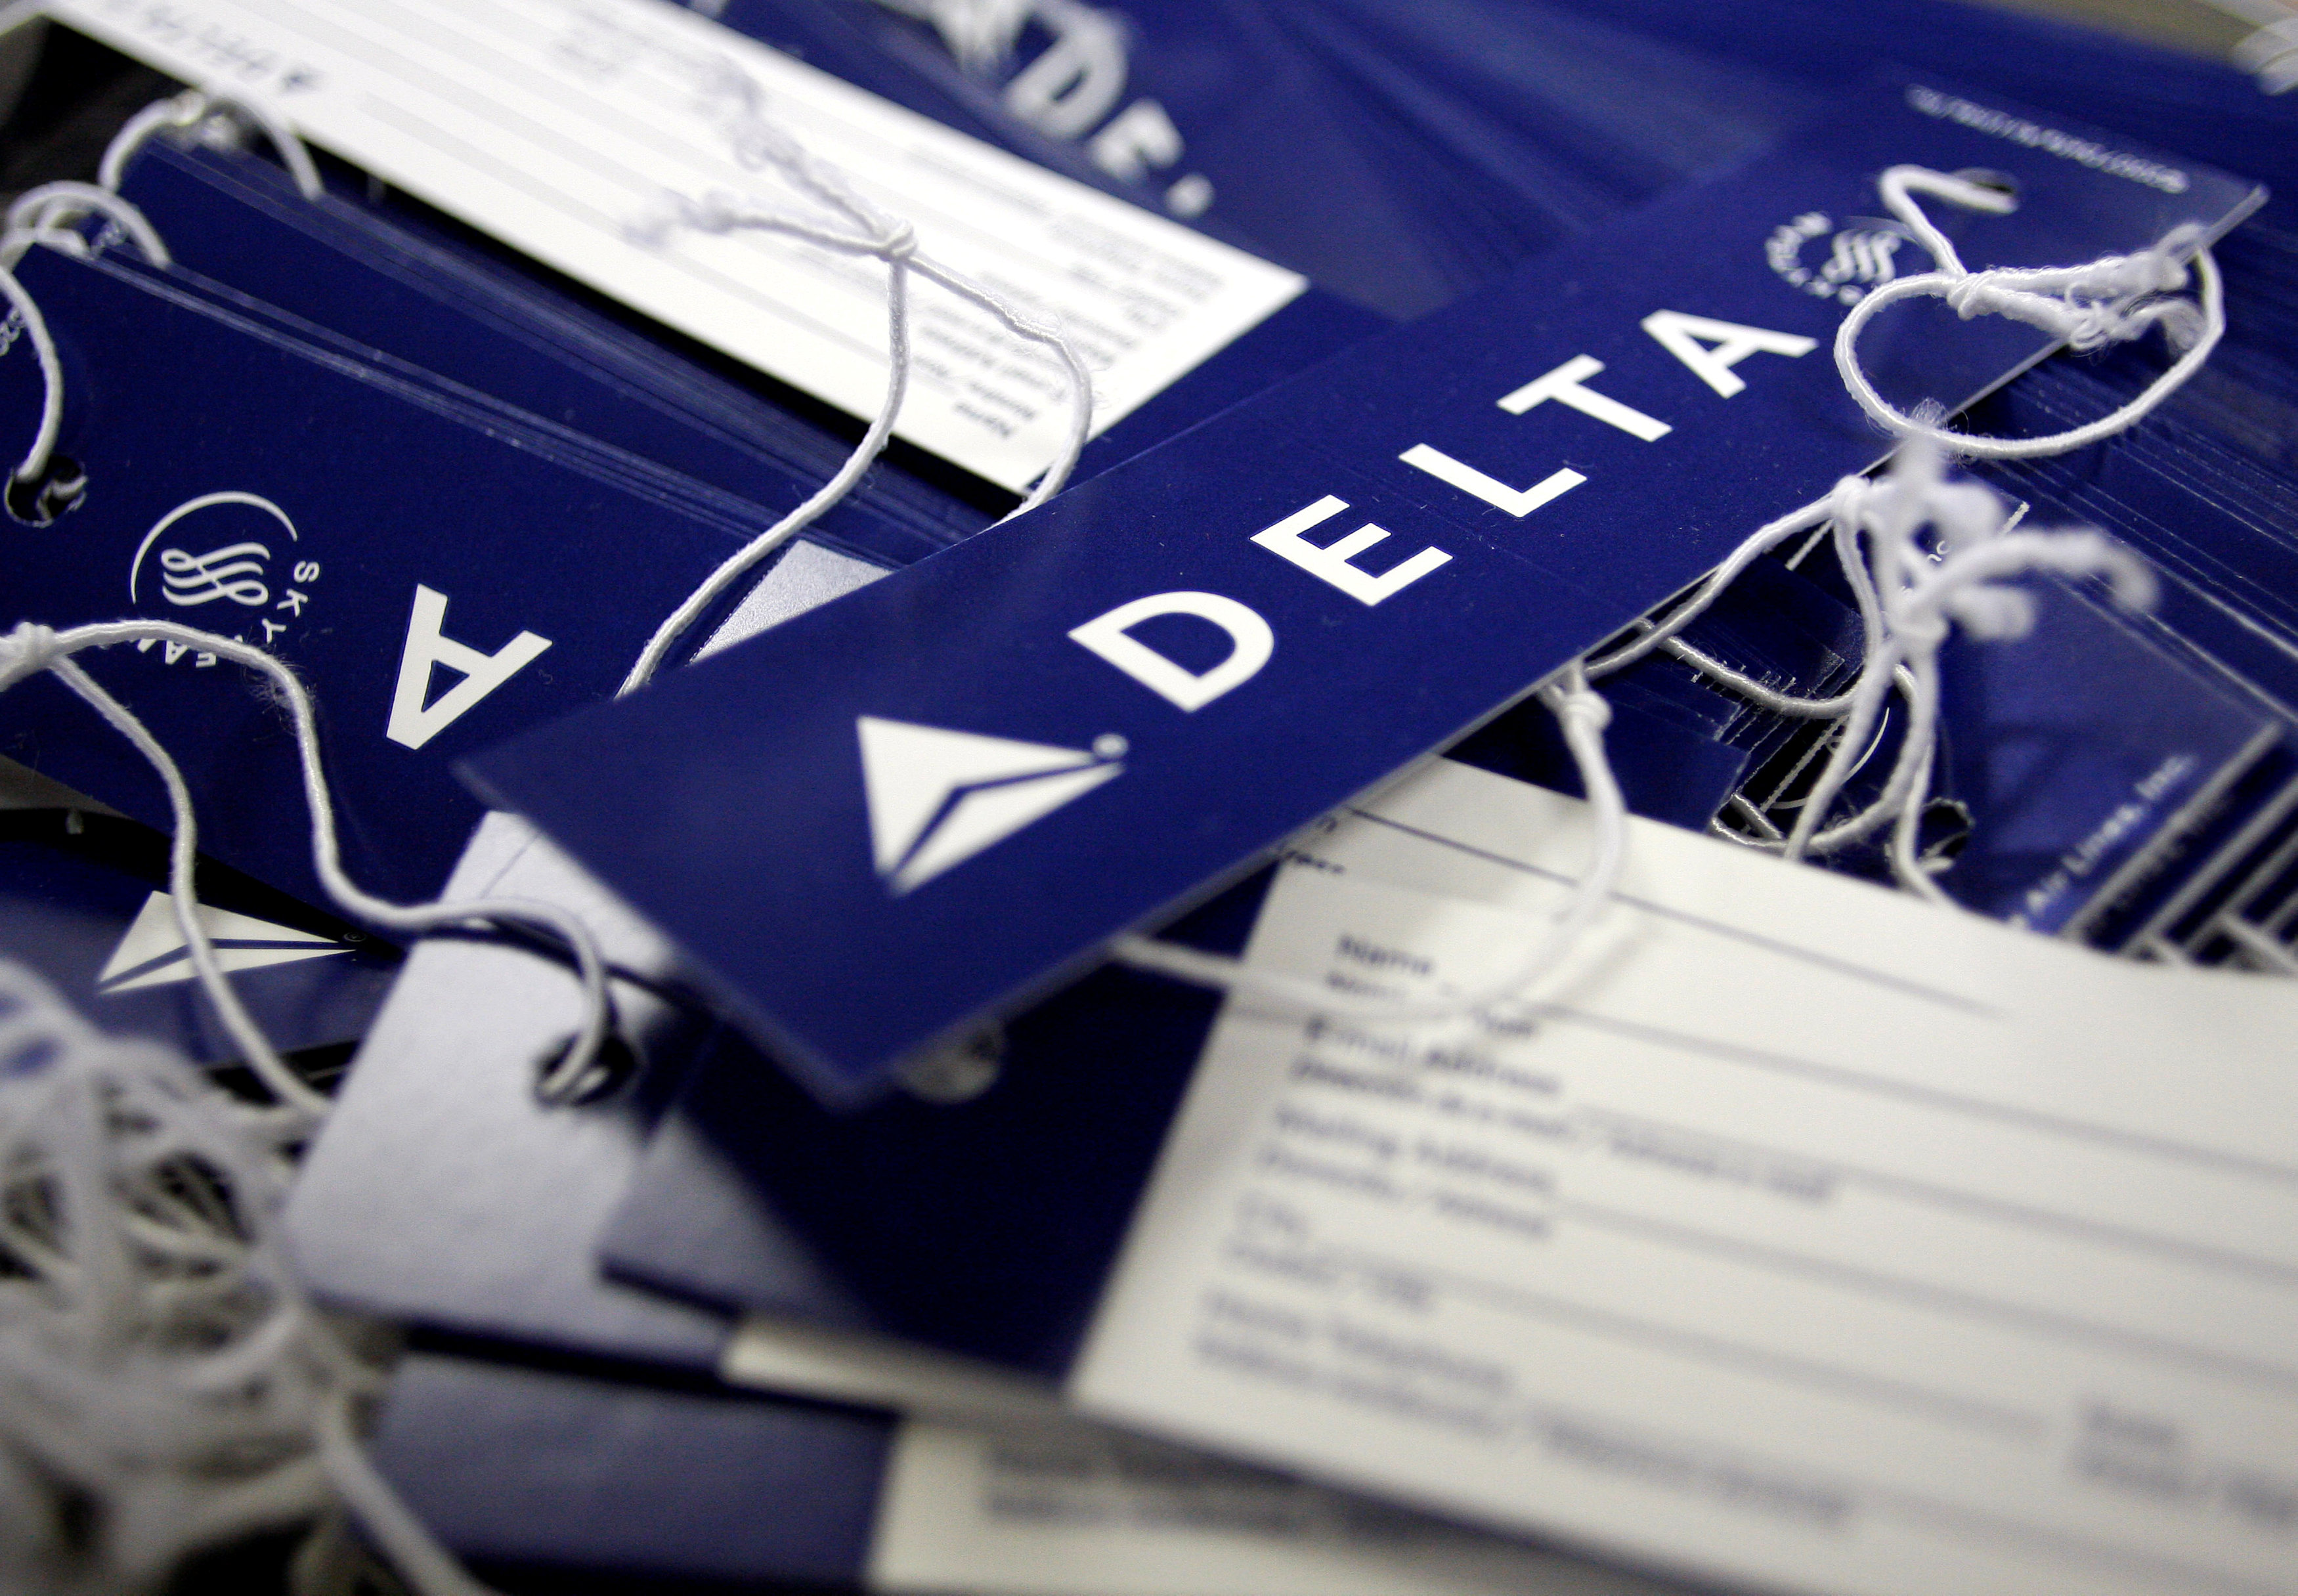 elta airline name tags are seen at Delta terminal in JFK Airport in New York